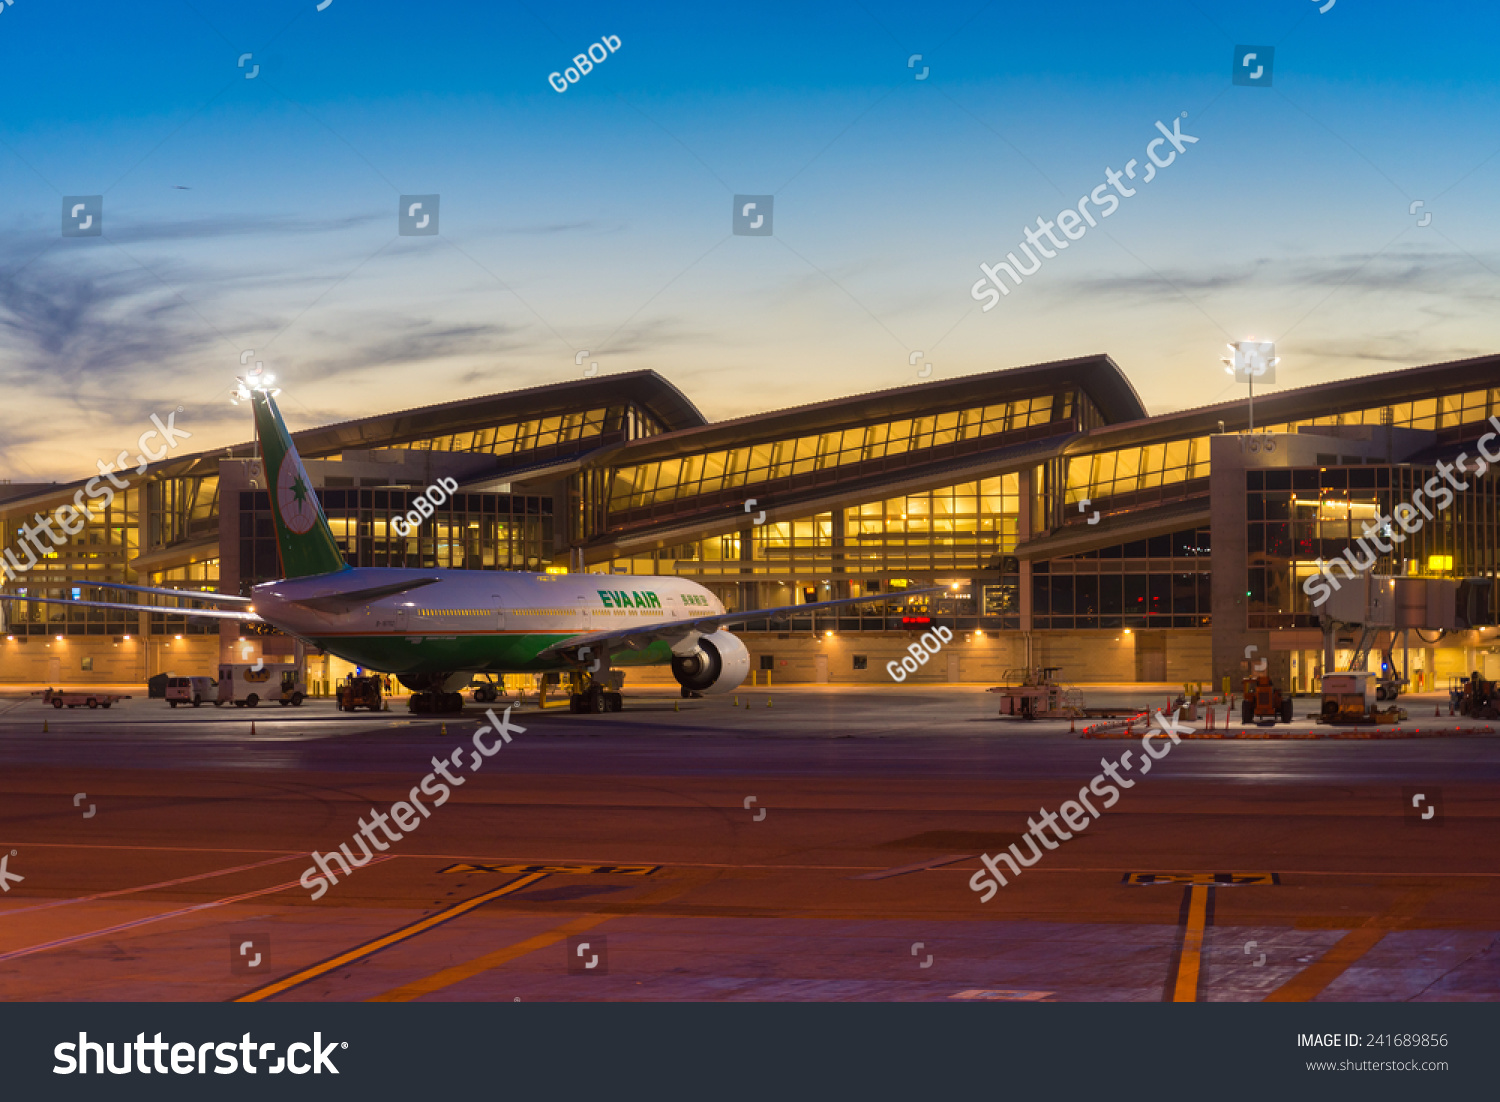 California october 30 eva air airplane parking at lax for Lax parking closest to airport